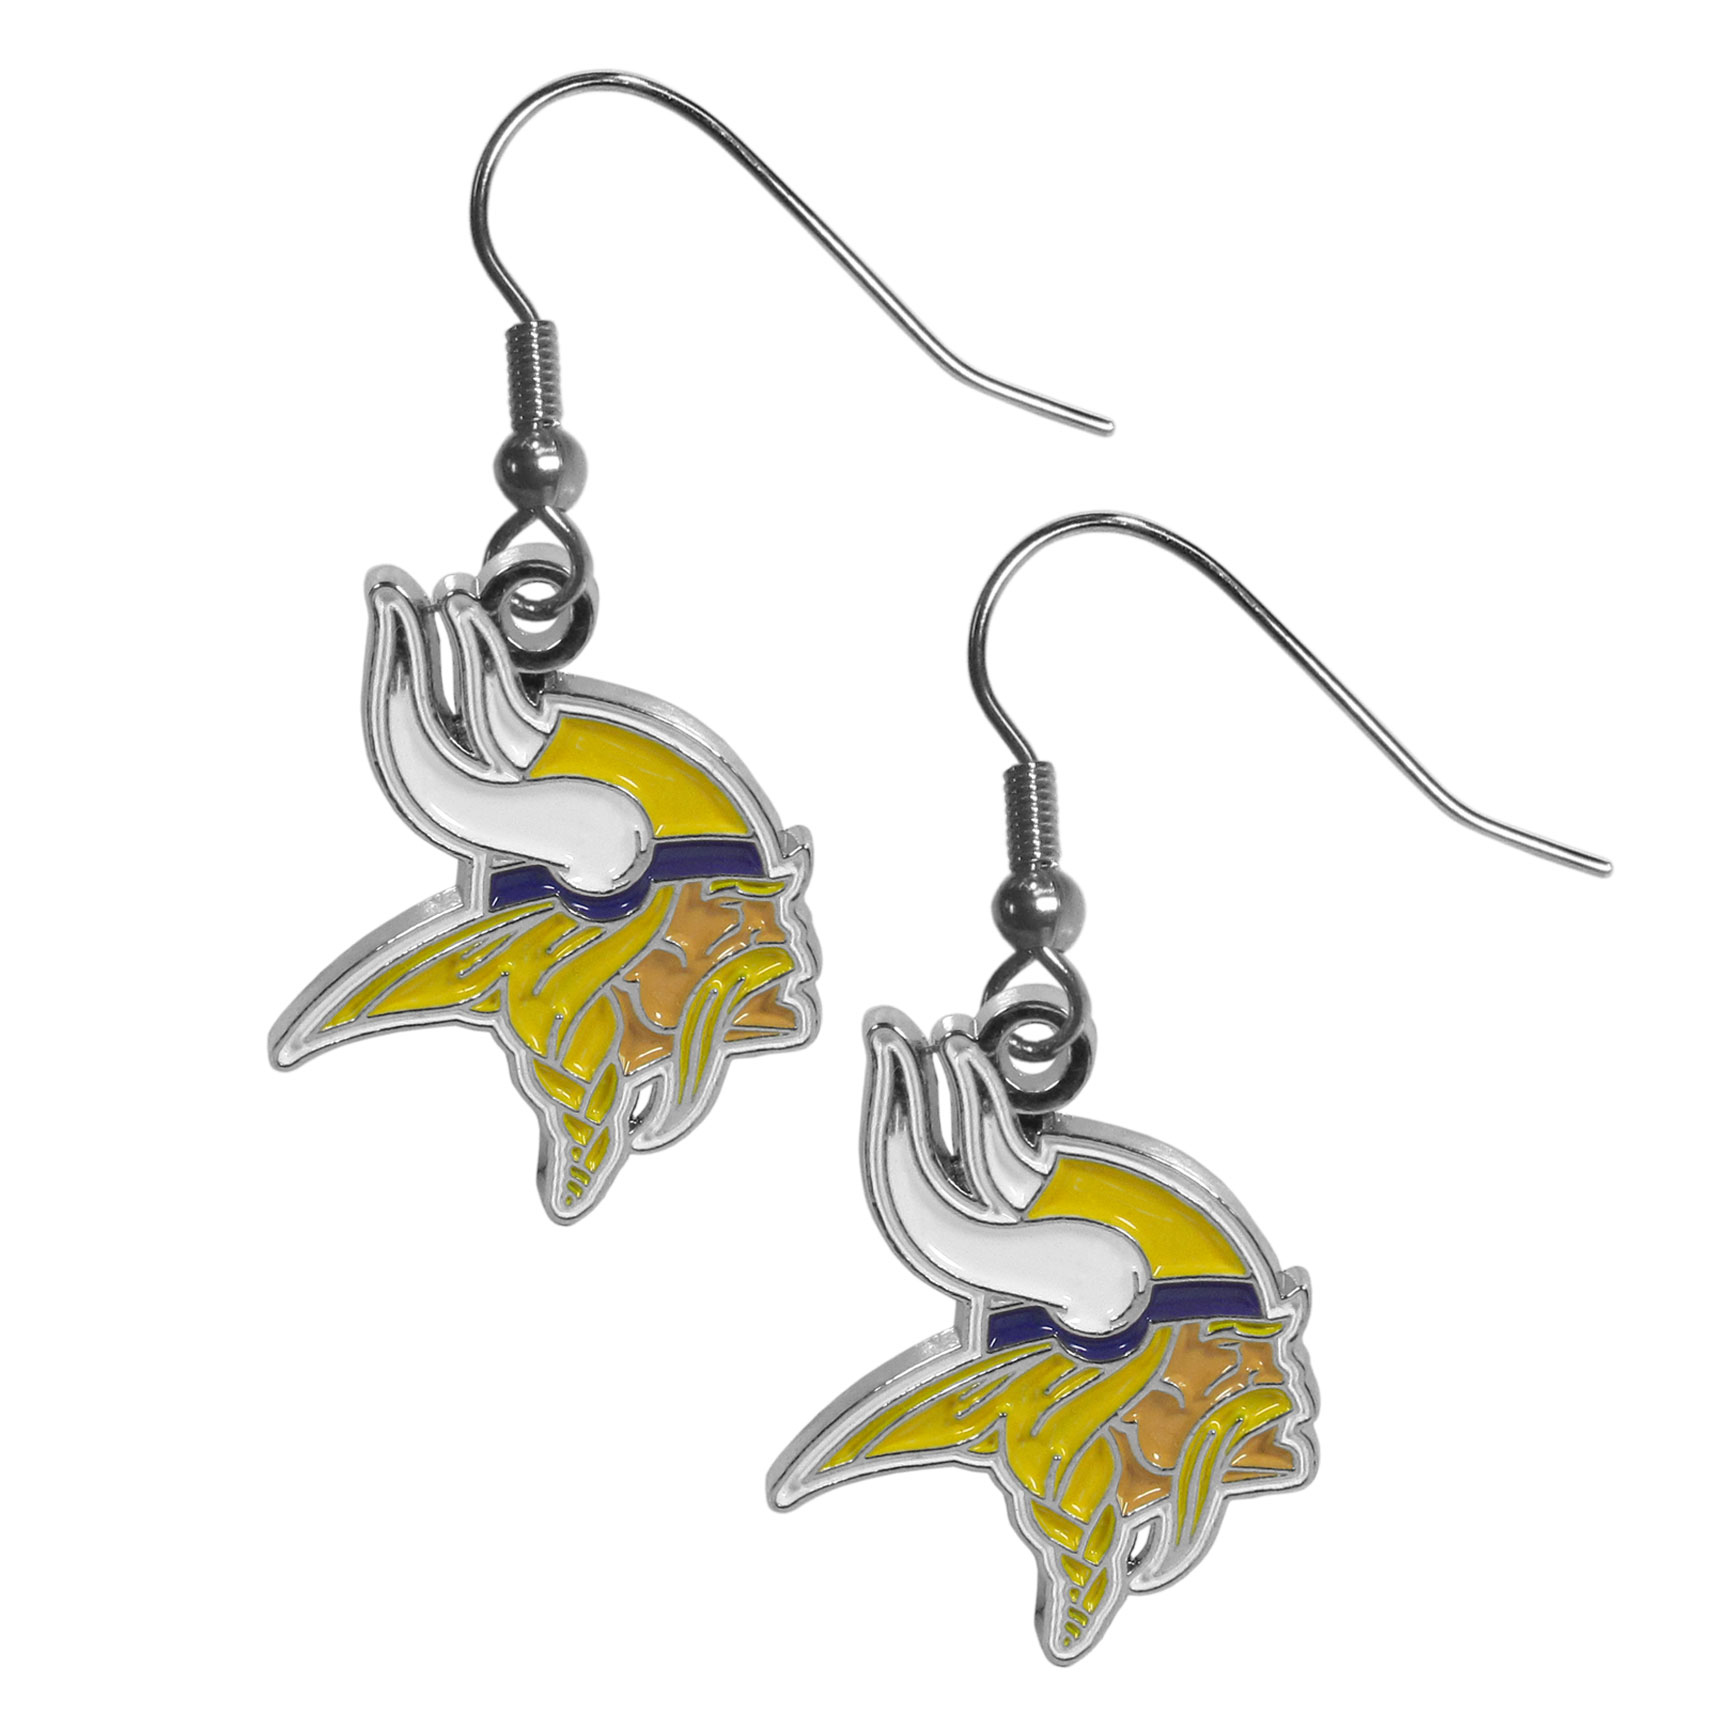 Minnesota Vikings Chrome Dangle Earrings - Officially licensed NFL Minnesota Vikings dangle earrings have fully cast Minnesota Vikings charms with exceptional detail and a hand enameled finish. The Minnesota Vikings chrome dangle earrings have a high polish nickel free chrome finish and hypoallergenic fishhook posts.